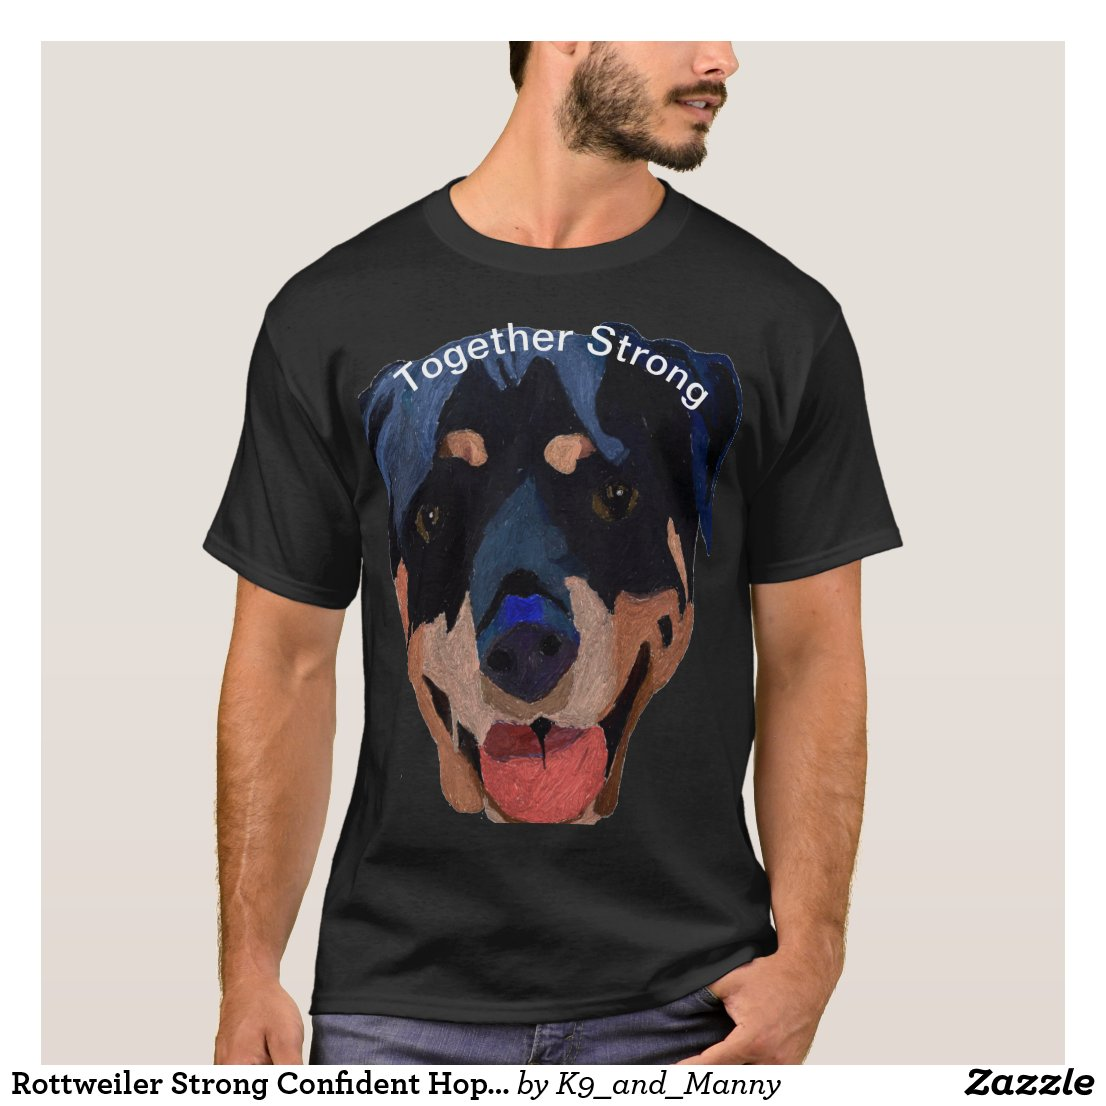 Rottweiler Strong Confident Hopeful T-Shirt